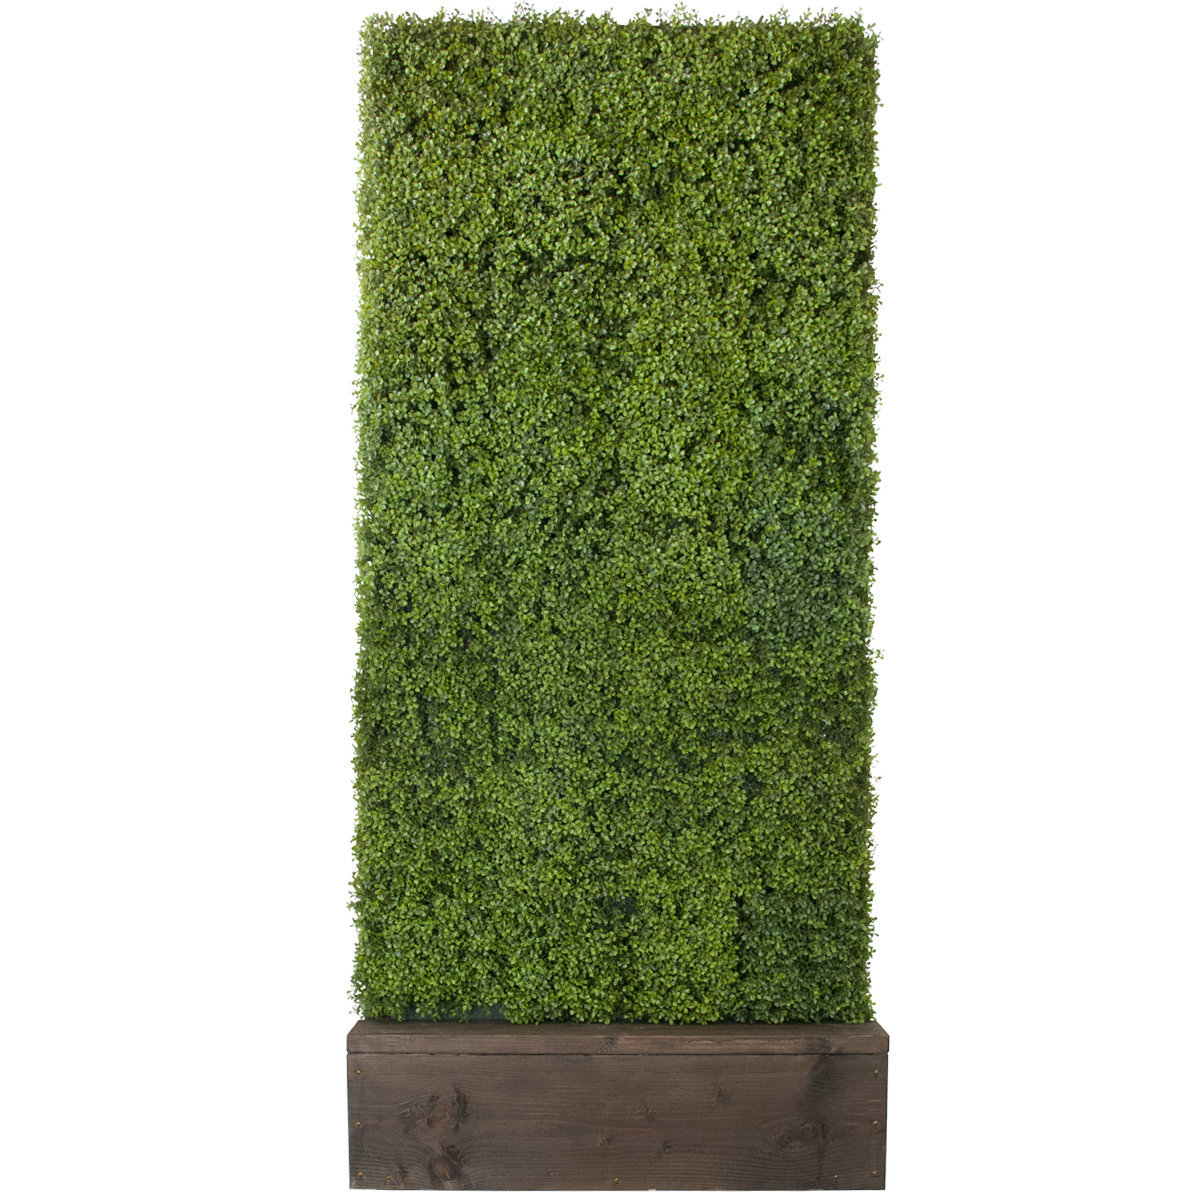 Boxwood hedge shrubs artificial png. Celebrations party rentals